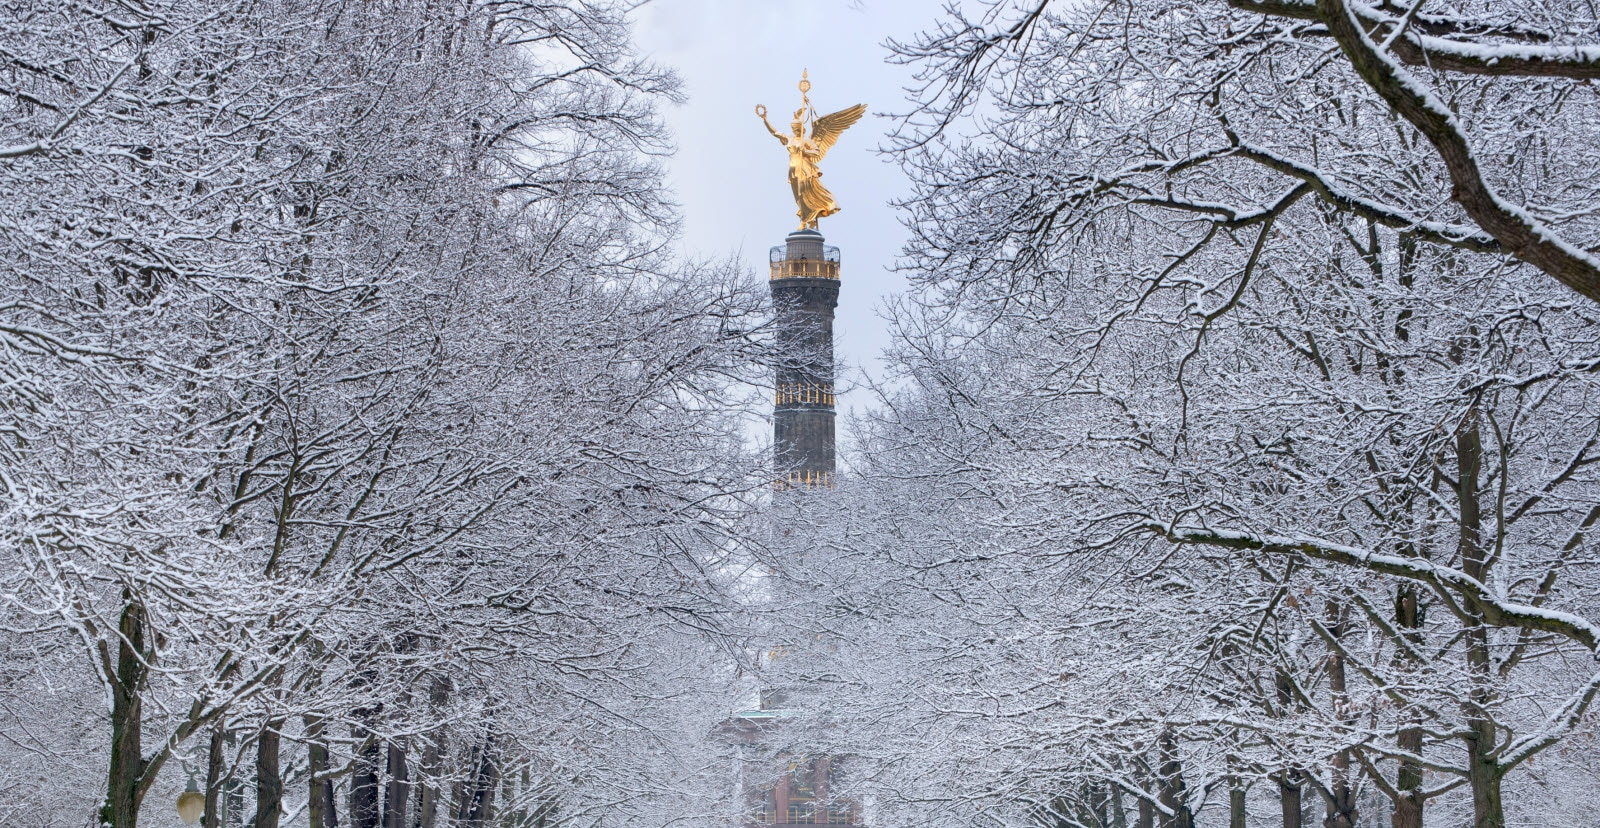 Siegessäule Berlin in winter